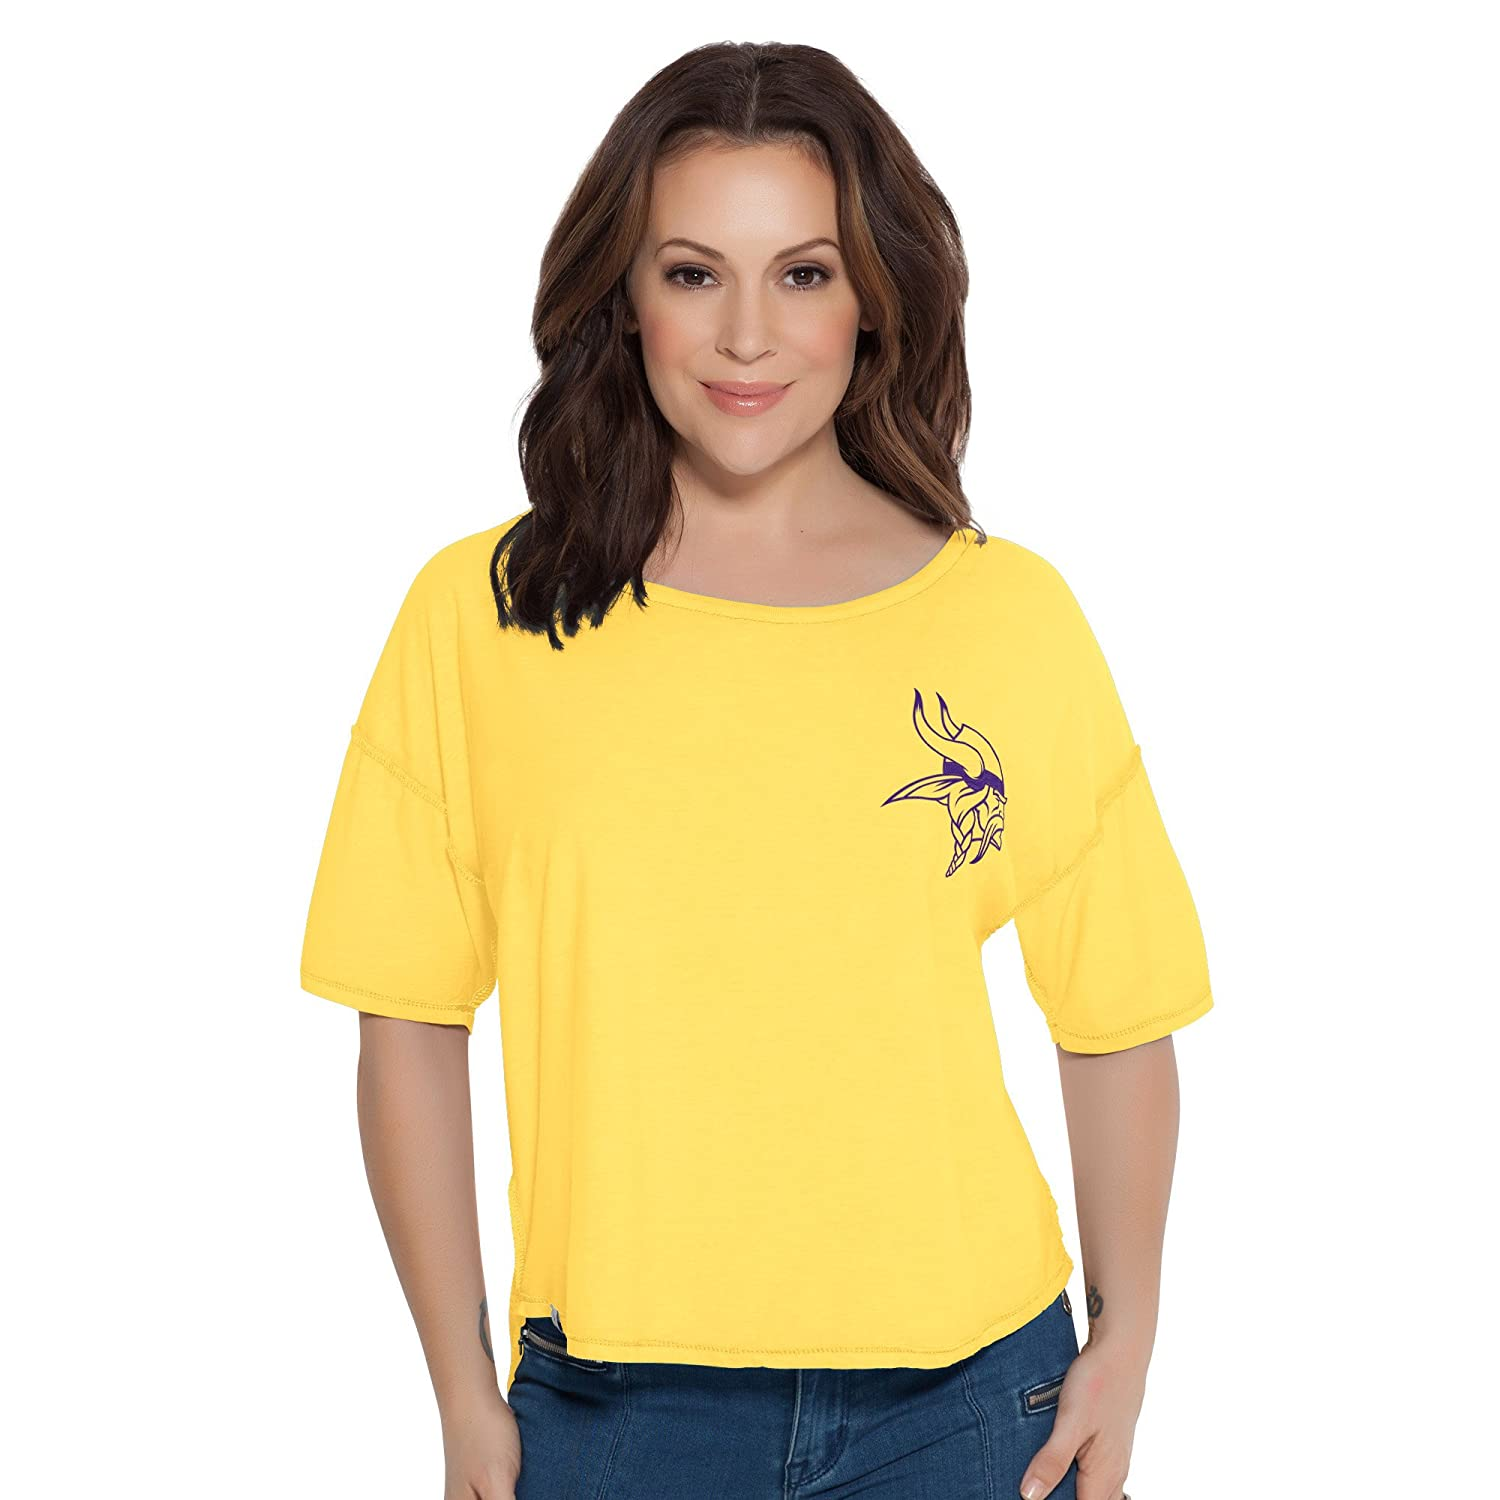 a7322a3c5 Amazon.com   Touch by Alyssa Milano S Base Reversible Tee   Sports    Outdoors